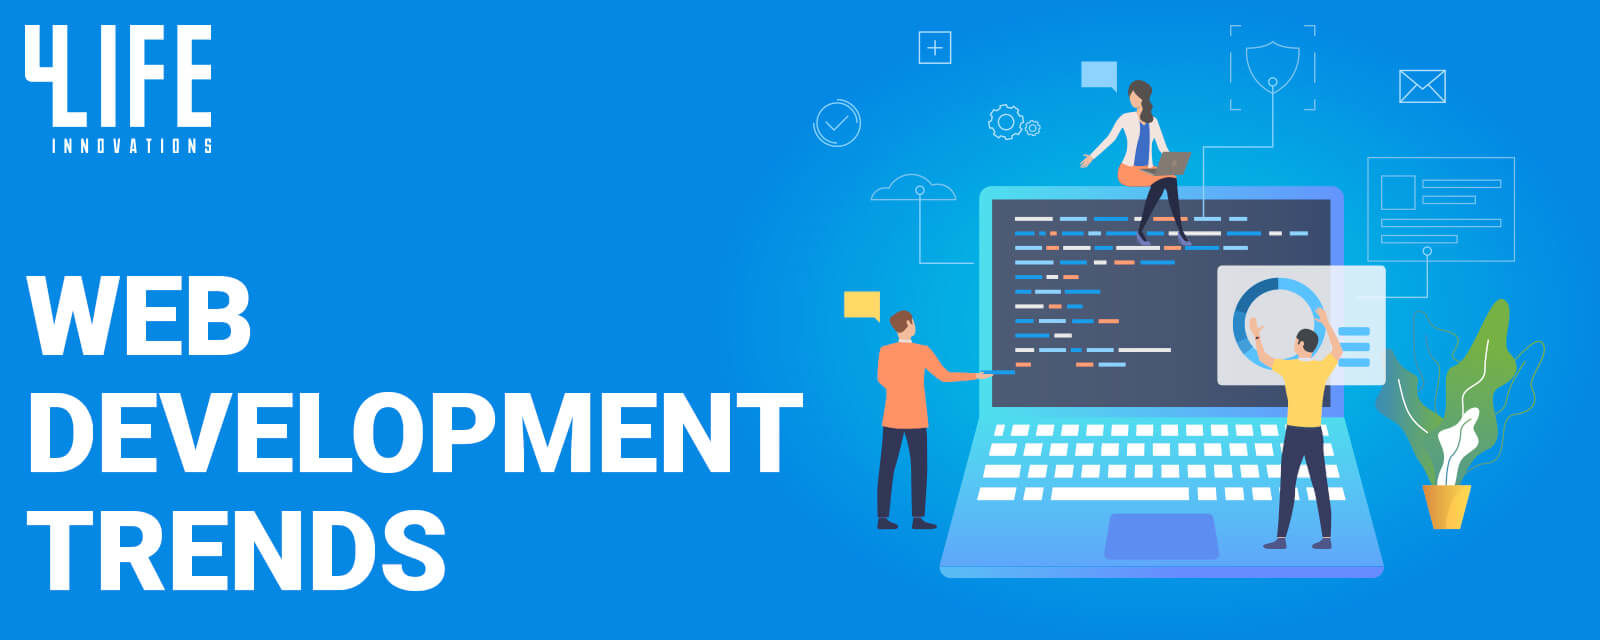 Top Web Development Trends to Look Out in 2019 - 4Life Innovations